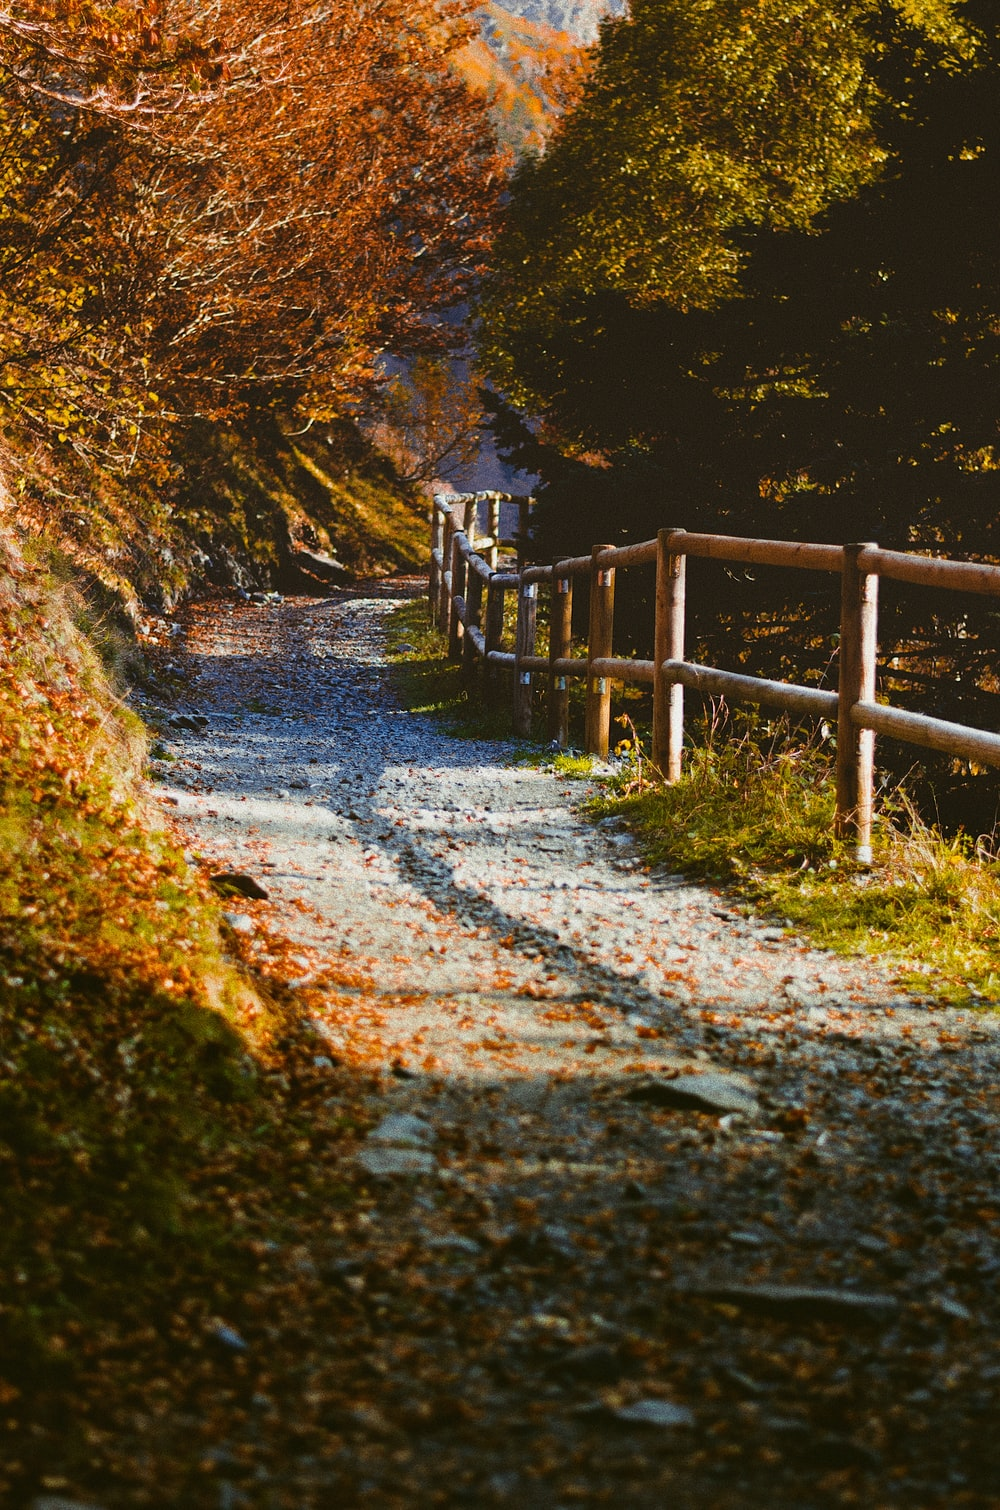 gray road near brown wooden fences and brown leaf trees